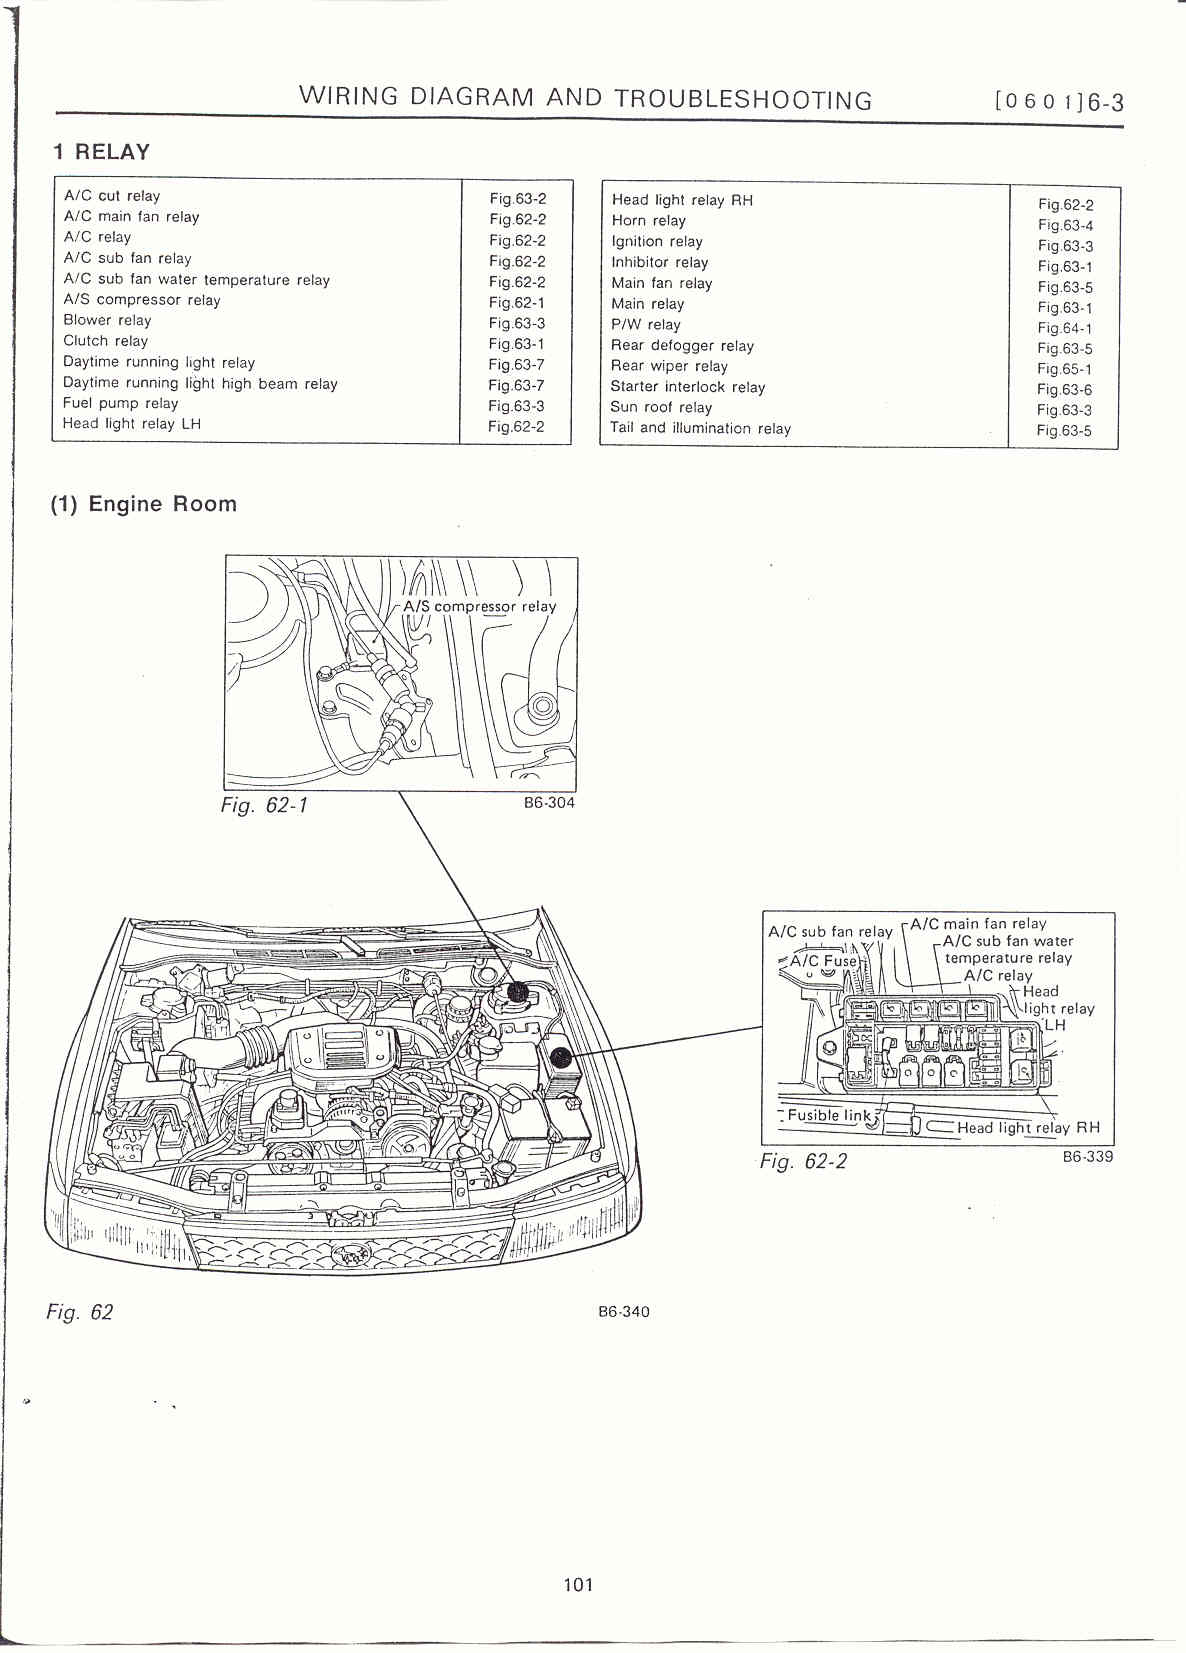 surrealmirage subaru legacy swap electrical info   notes Subaru Impreza Stereo Wiring Diagram 2006 Subaru Impreza Radio Wiring Diagram